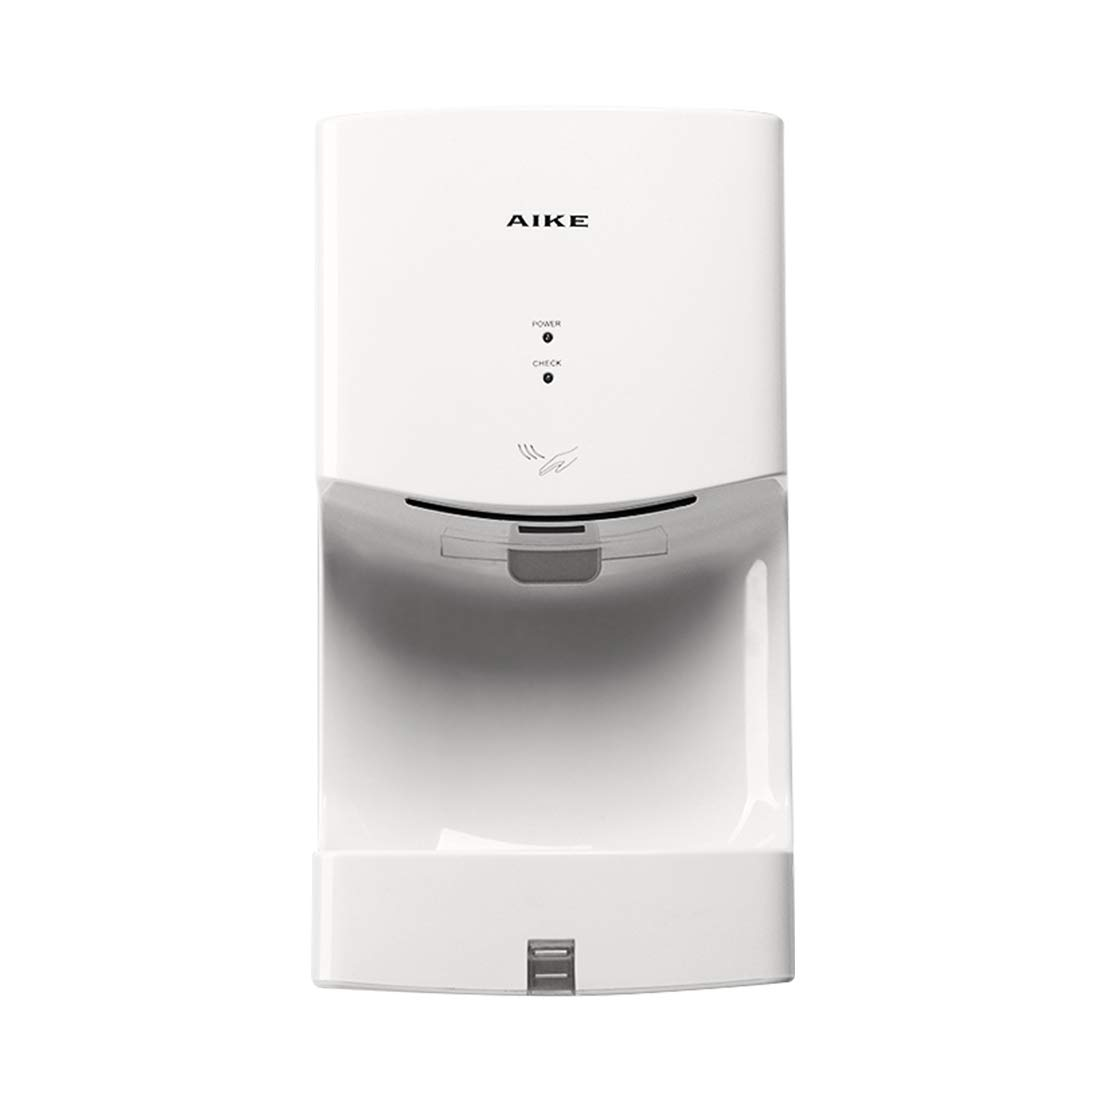 AIKE AK2630T White Automatic Jet Hand Dryer with Drain Tank 1400W, ABS Cover